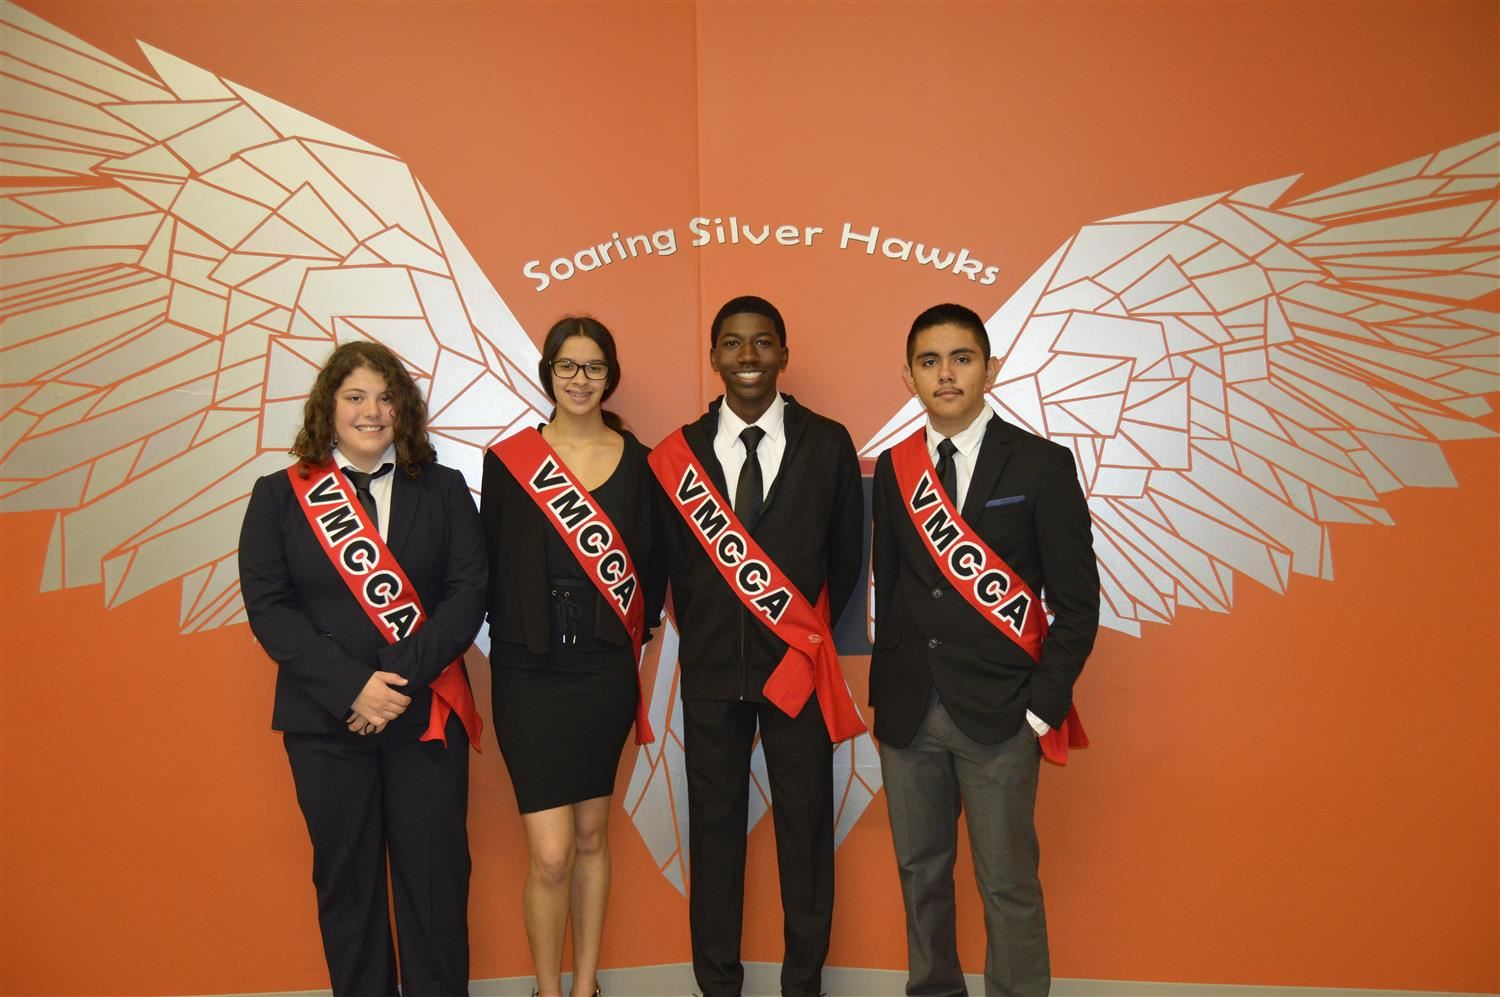 Four student leaders dressed in business attire